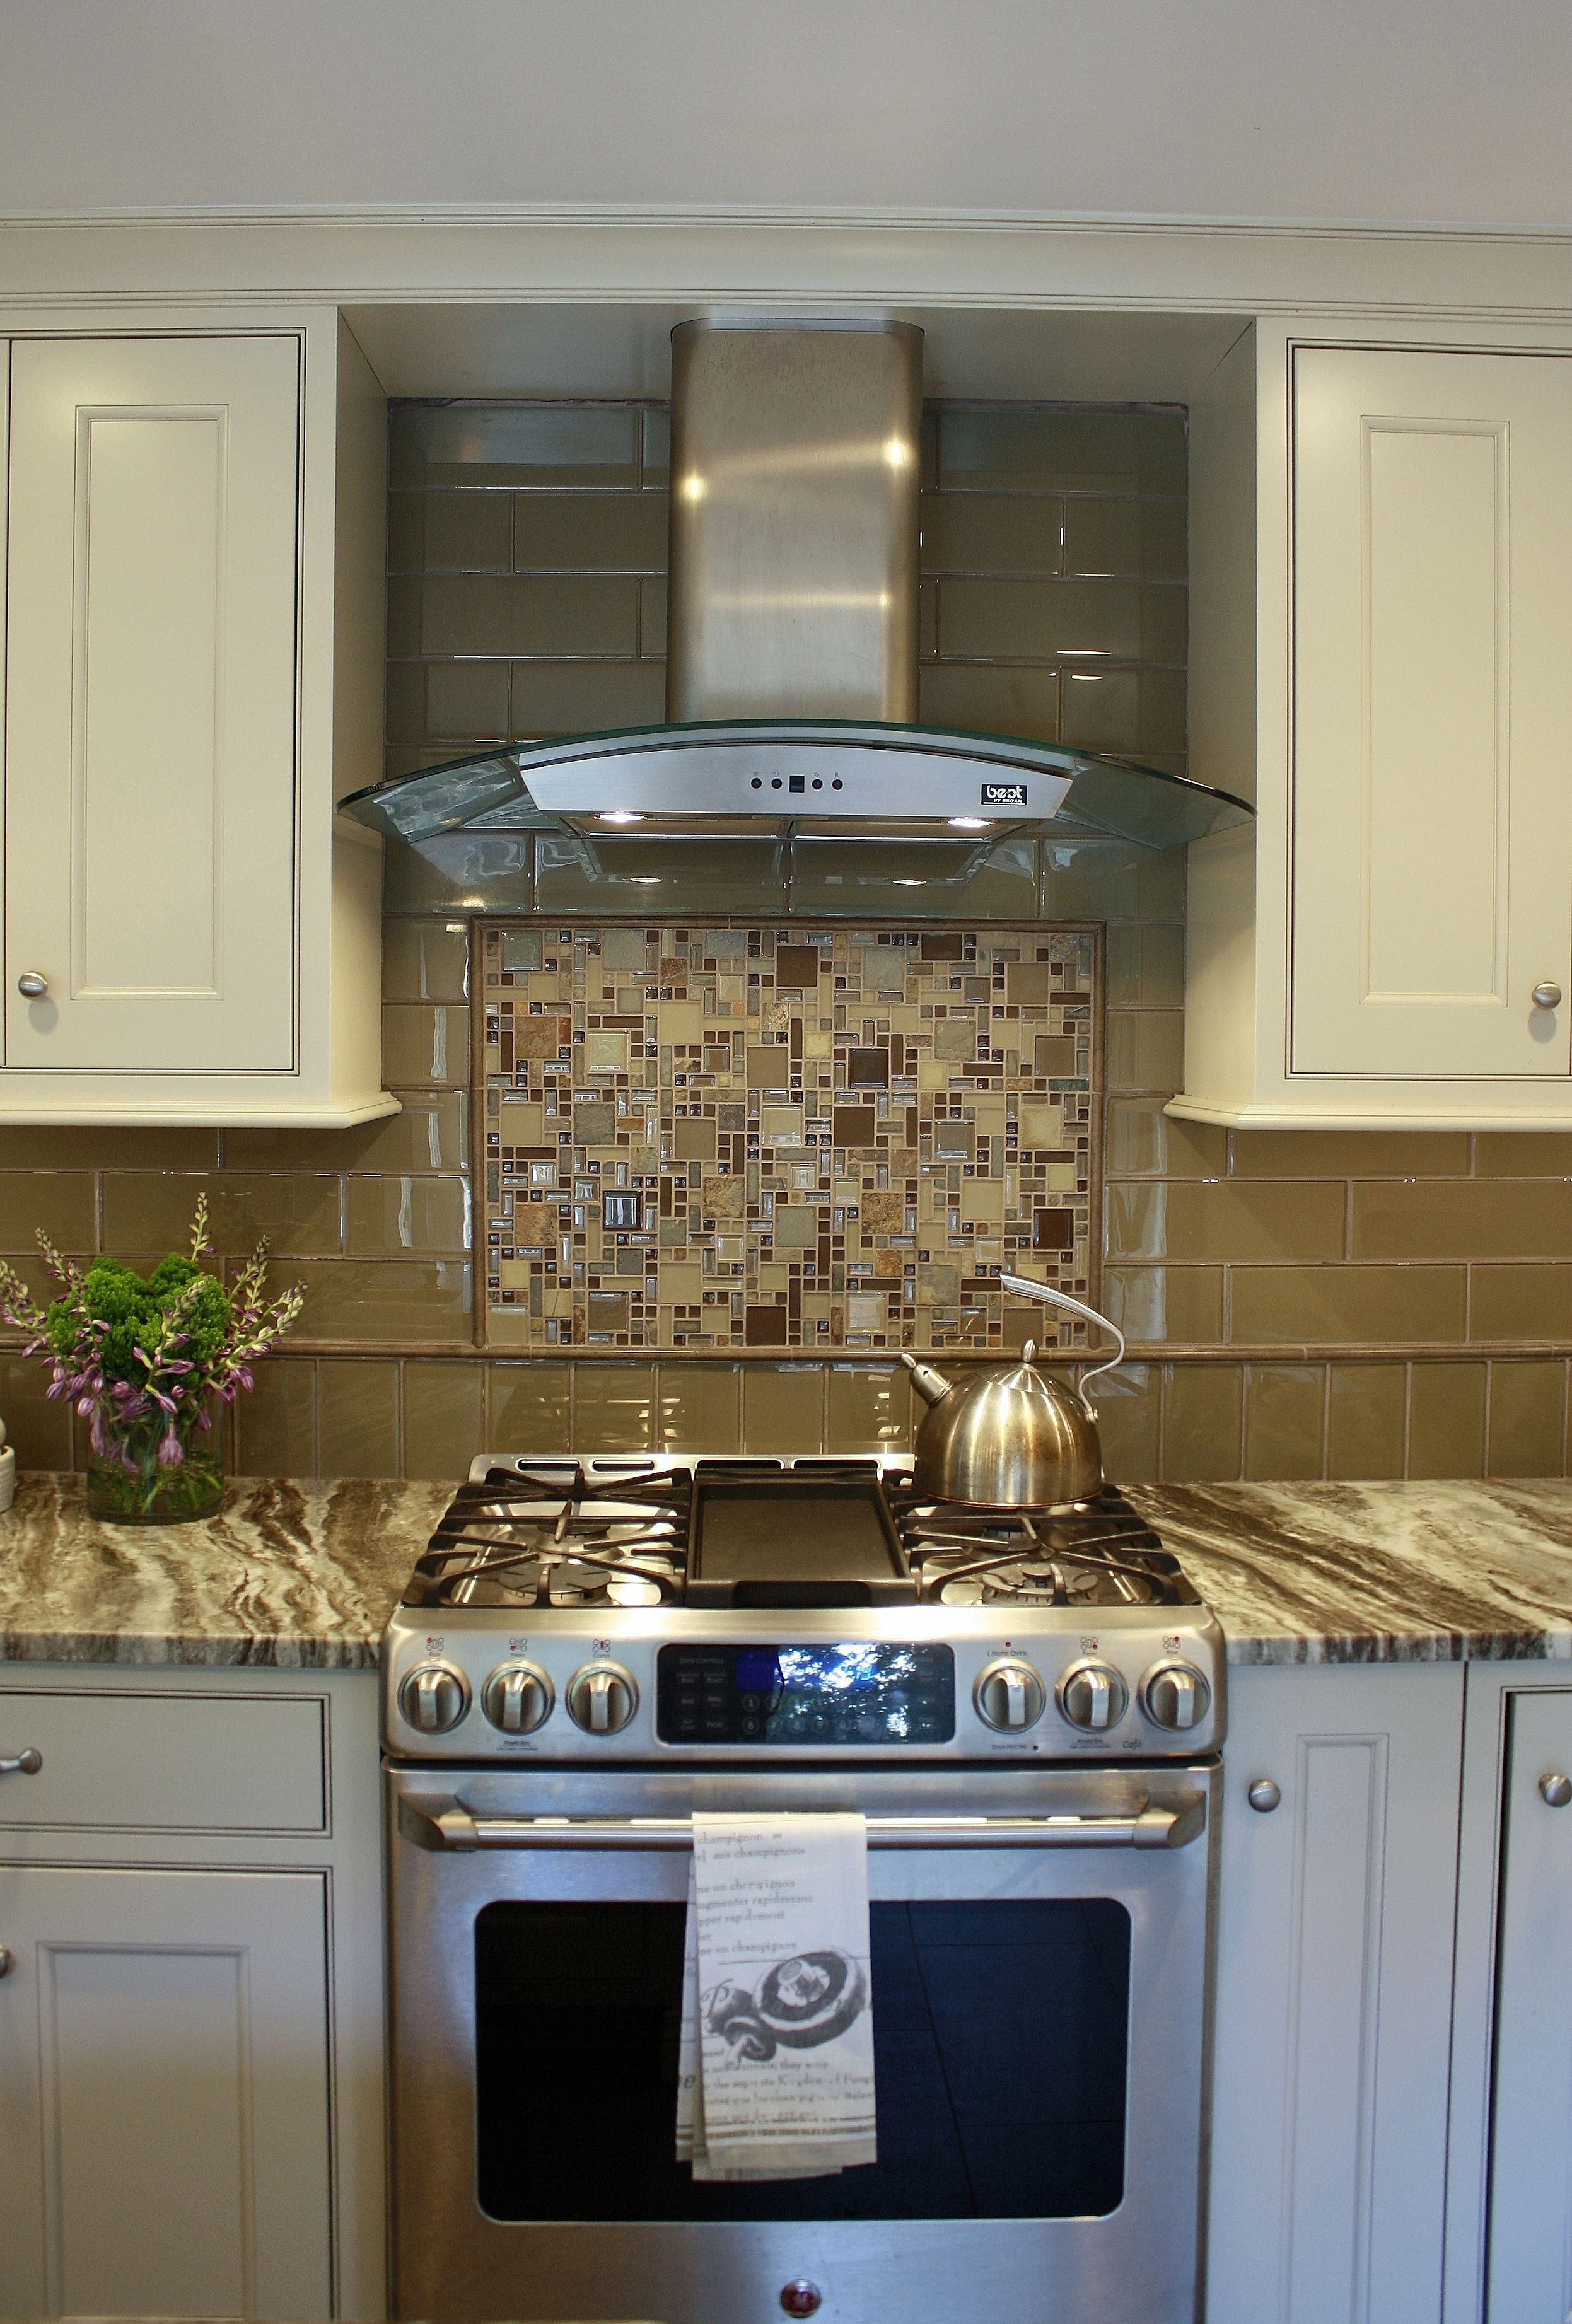 Discount Granite Countertops Nj Brown Fantasy Leathered Quartzite Countertops With White